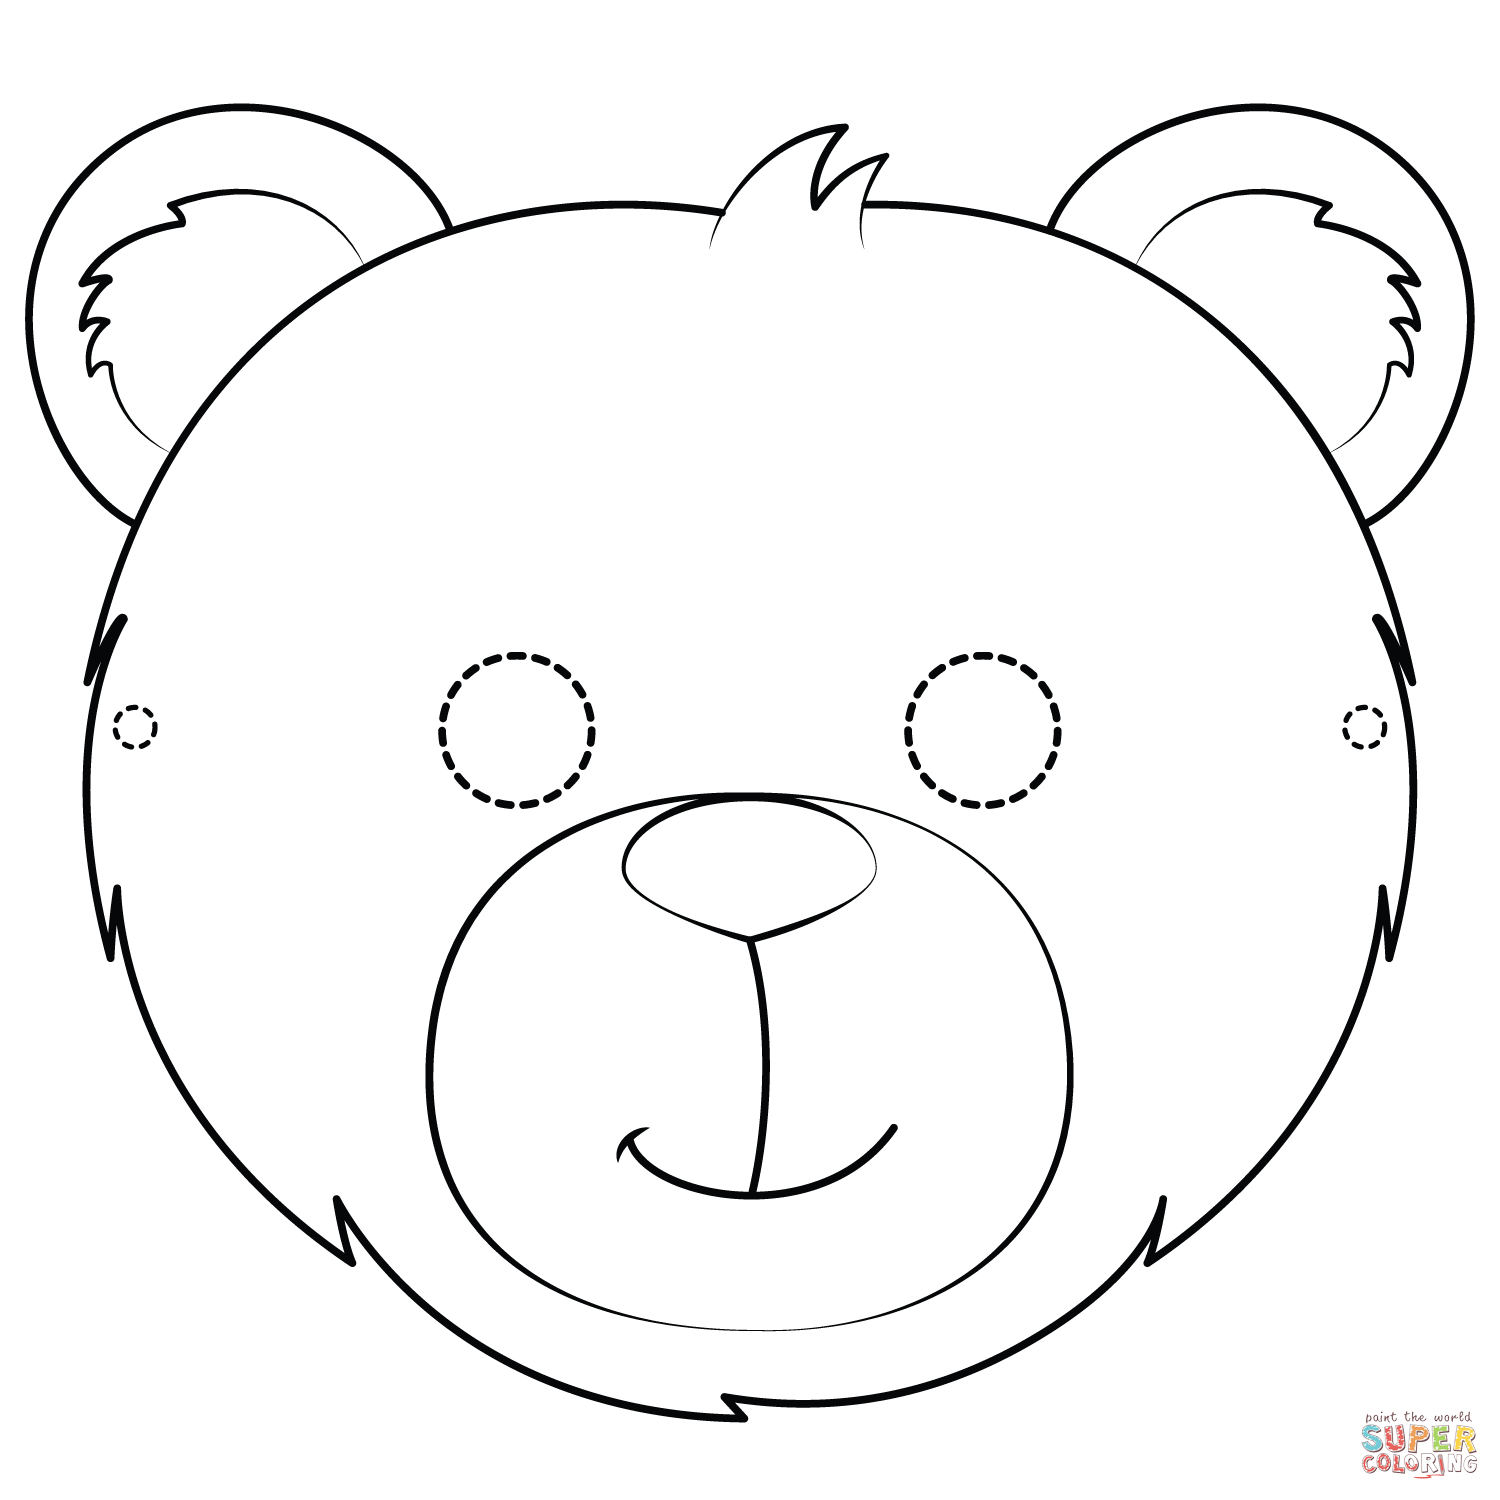 Bear Mask Coloring Page | Free Printable Coloring Pages - Free Printable Bear Mask